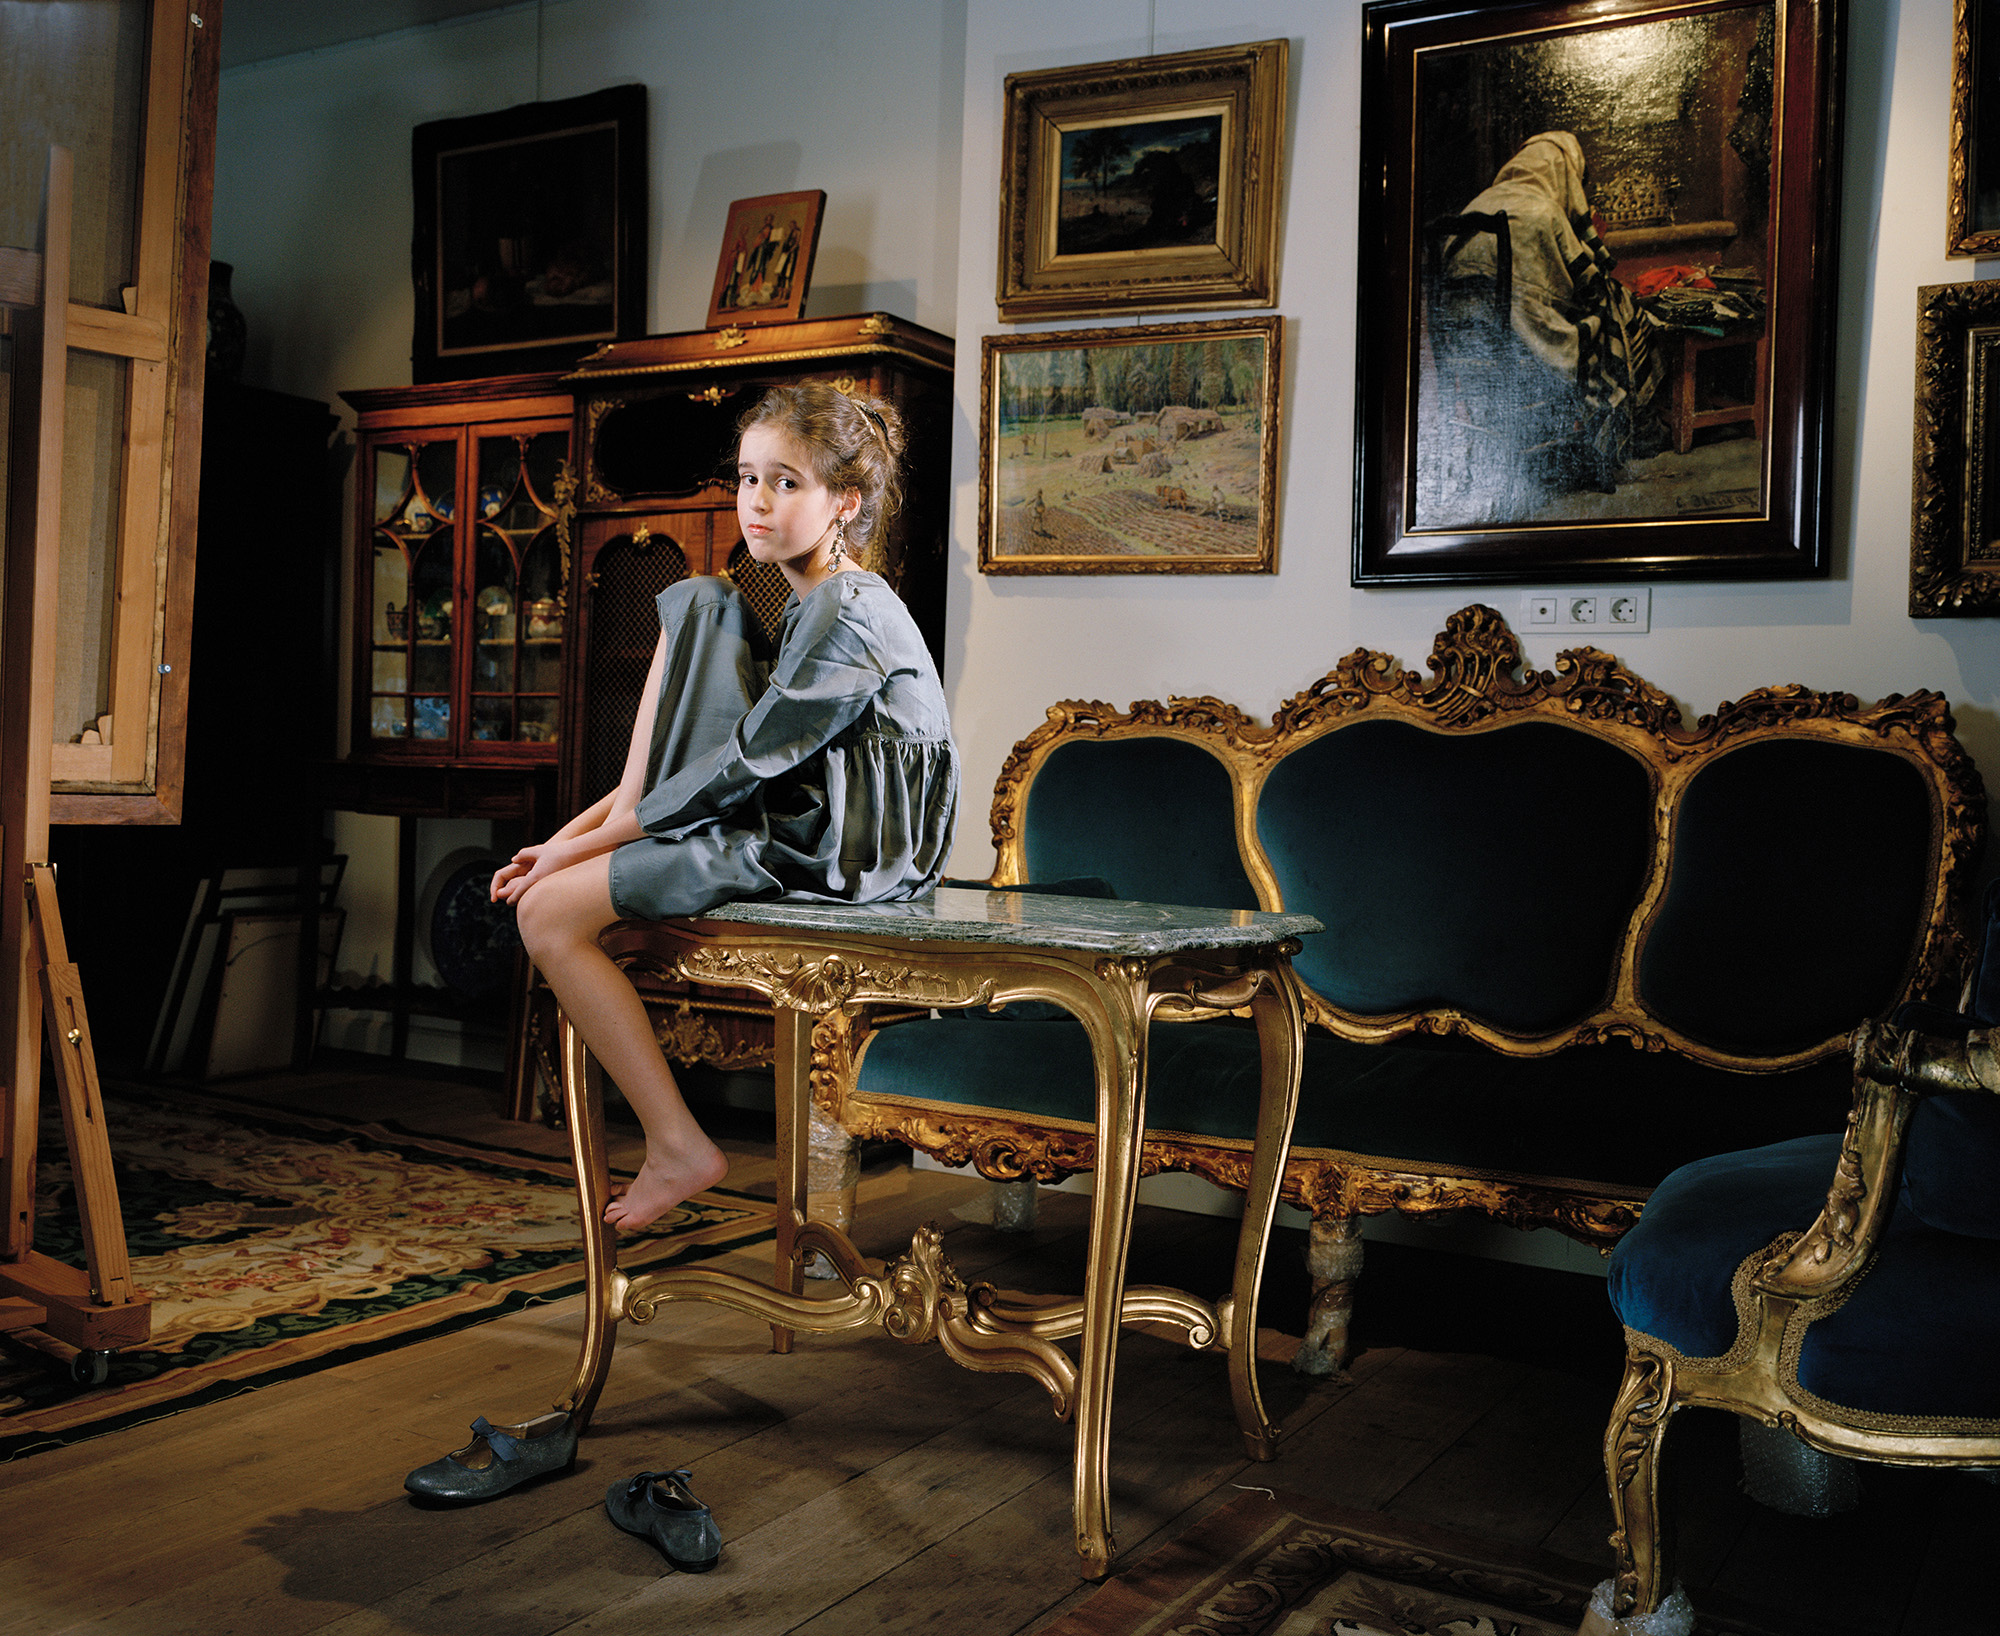 Liza inside Her Father's Antique Store, Moscow 2010